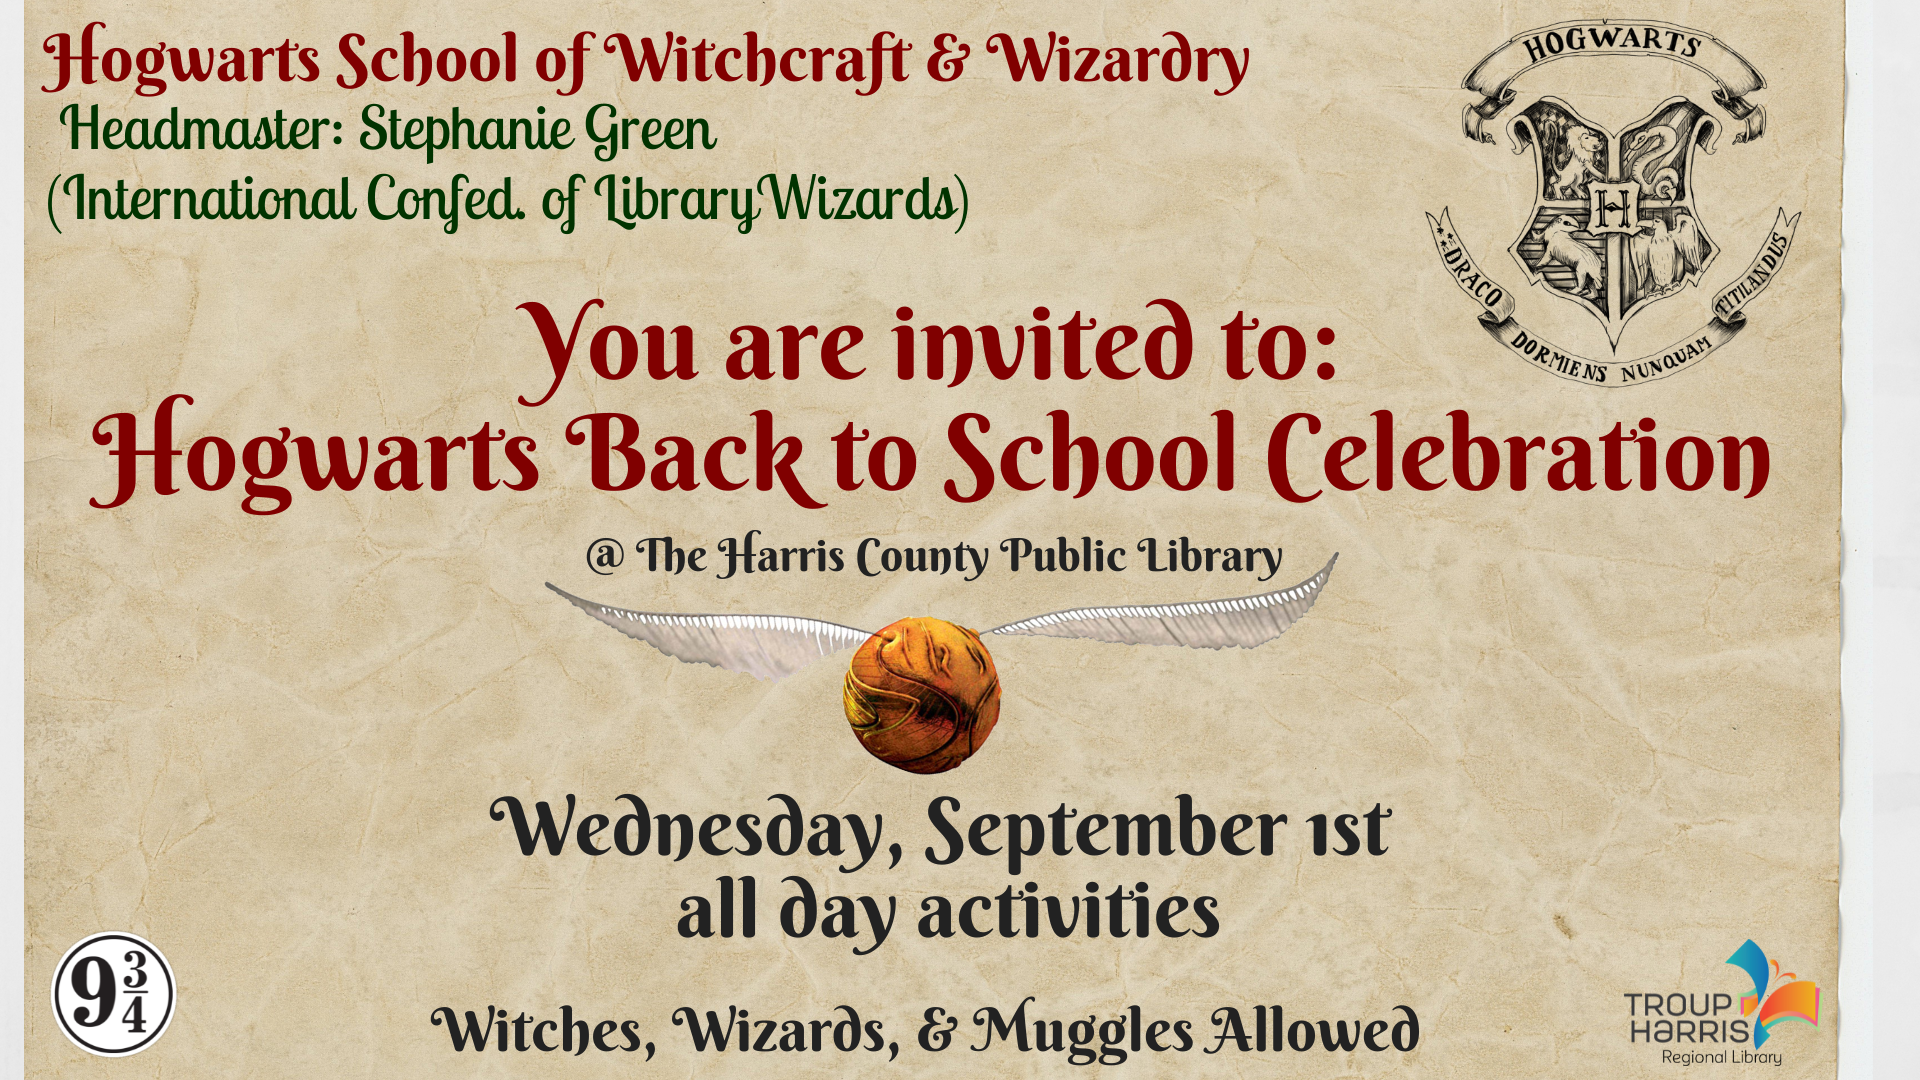 Come to the Harris County Public Library on Monday, September 1 to celebrate a new school year at Hogwarts! Harry Potter related activity stations will be set up all day. Come dressed in your favorite house or character. Muggles allowed as well.